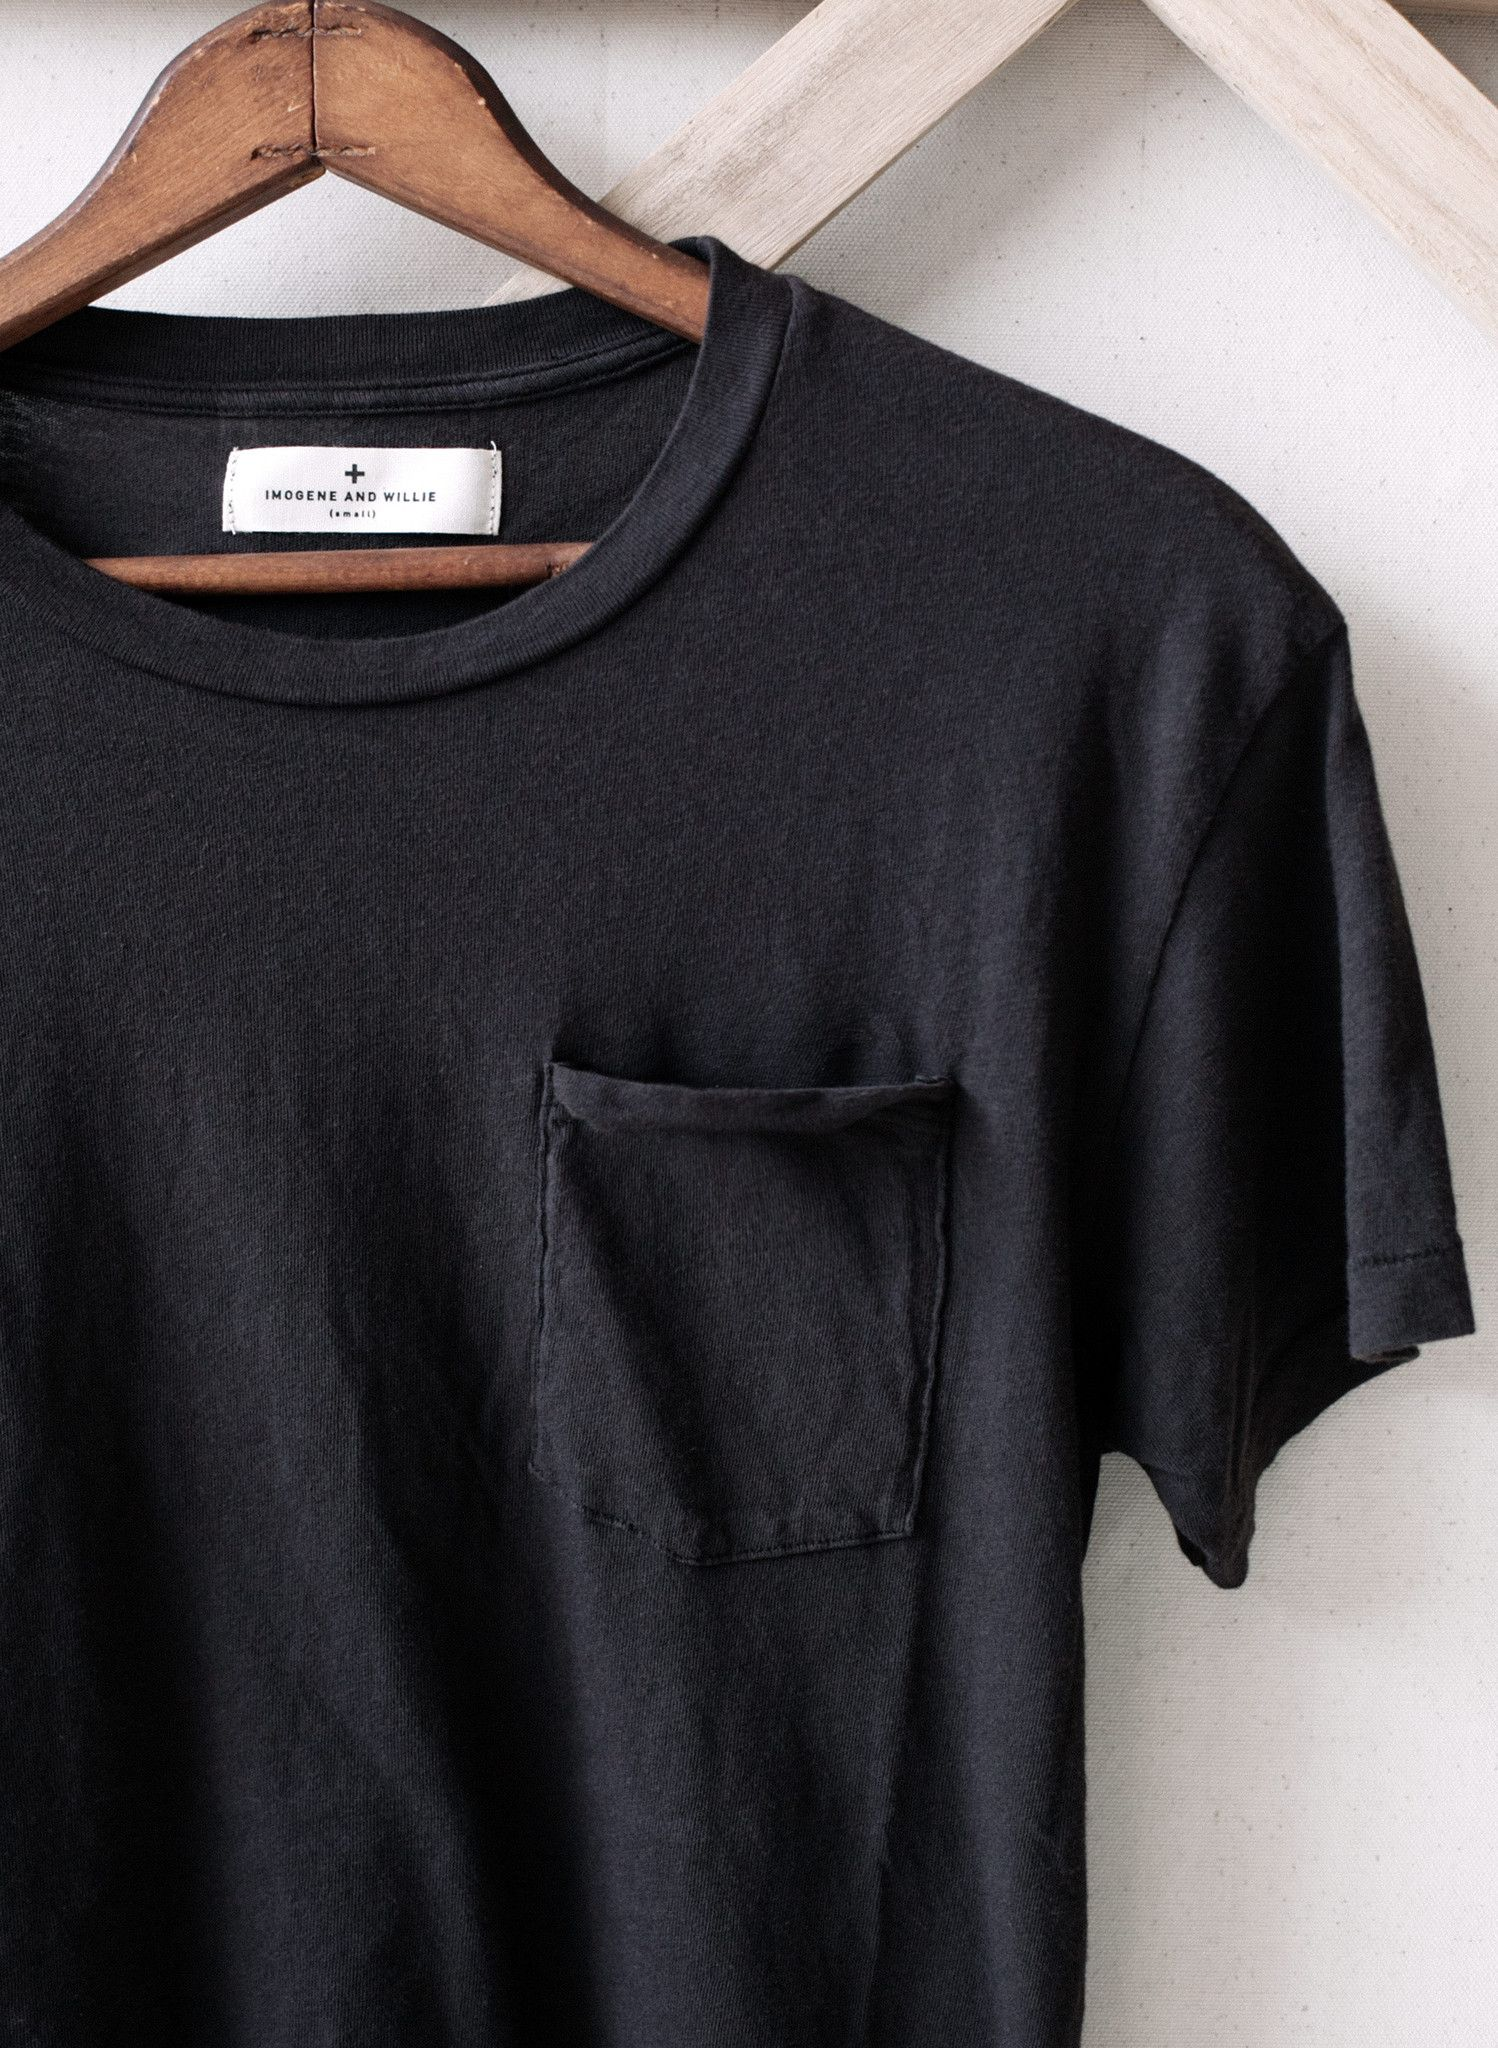 c798c63e7d6b Lots of plain black pocket tees or with no pockets | Product ...